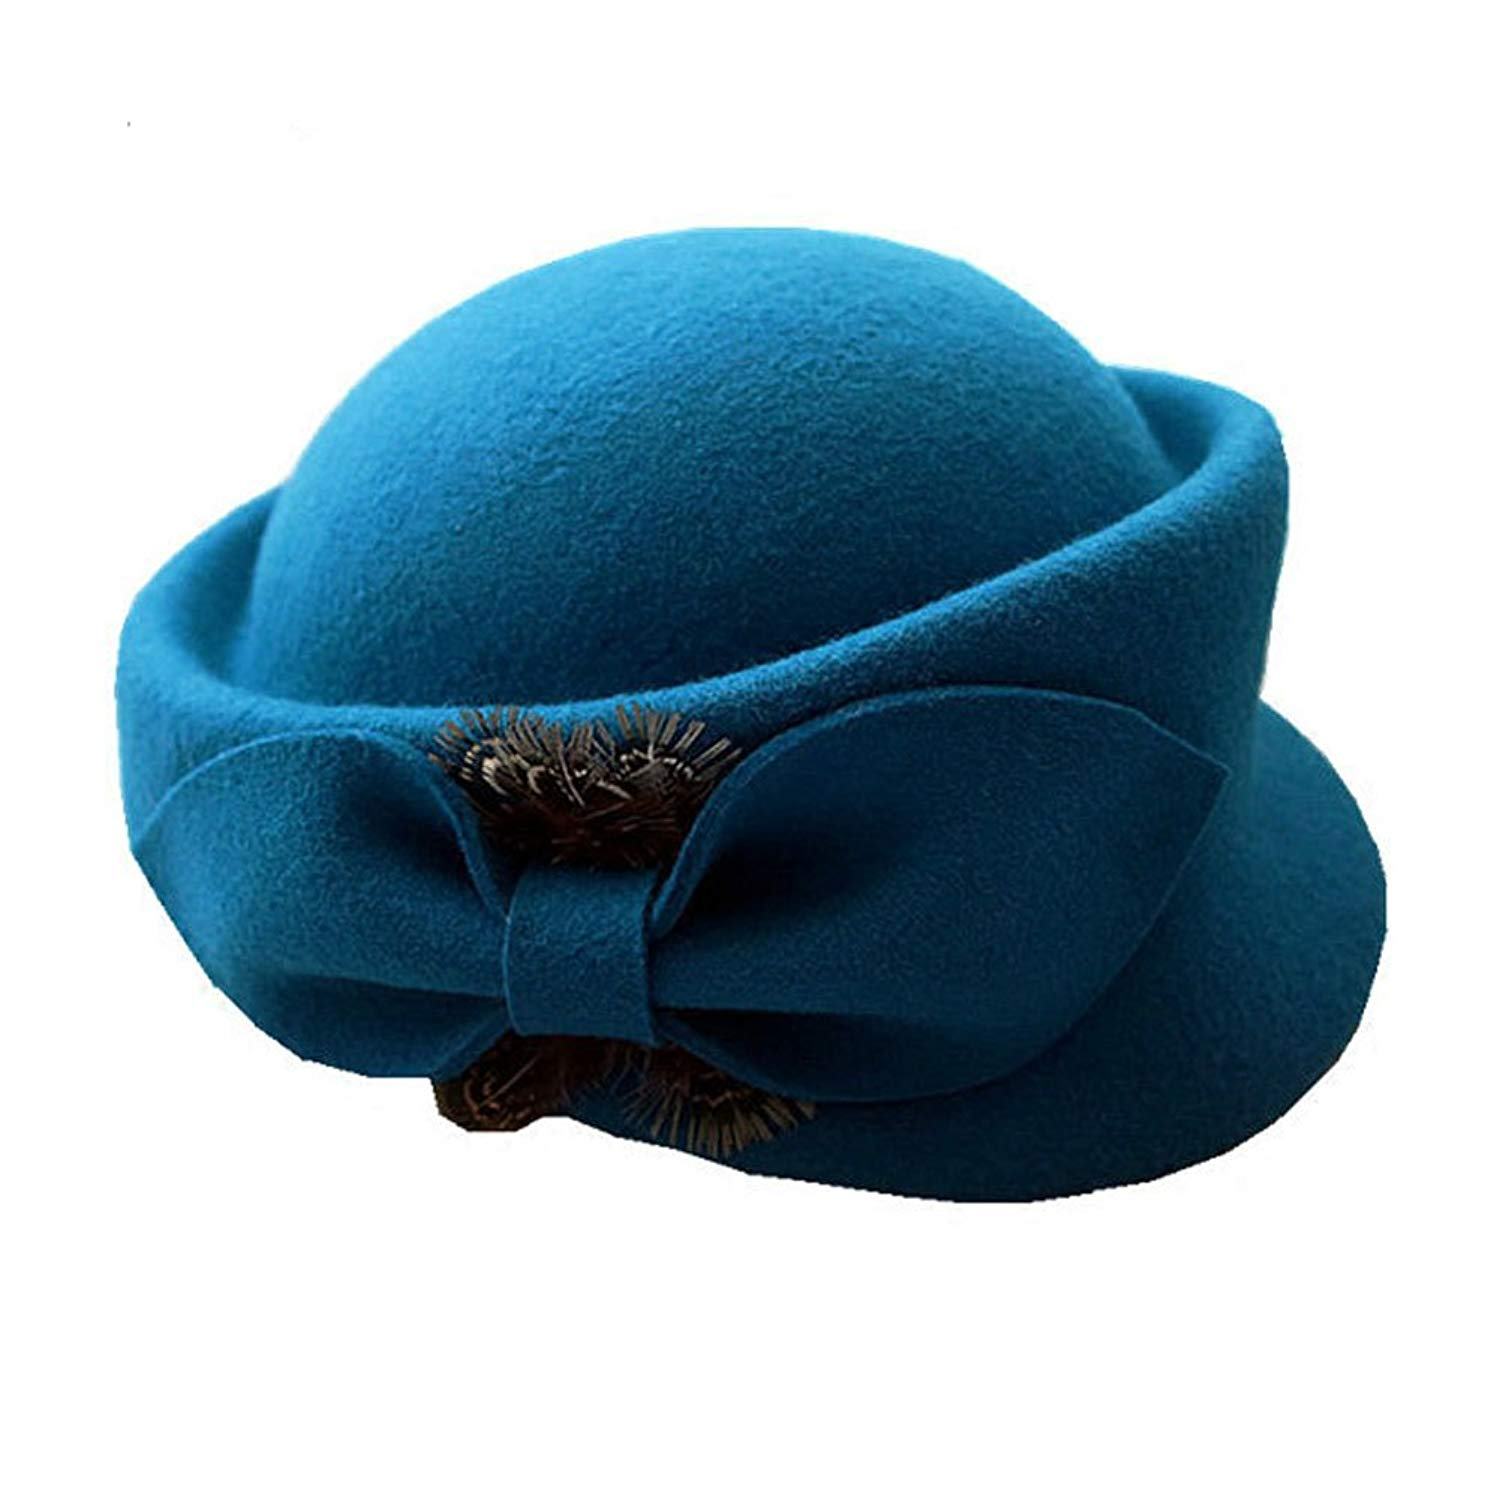 f967a06a6f6 Get Quotations · Queenestar Feather Beret Hat Peacock Wool Pillbox Cap  Wedding Hat Stewardess Cap